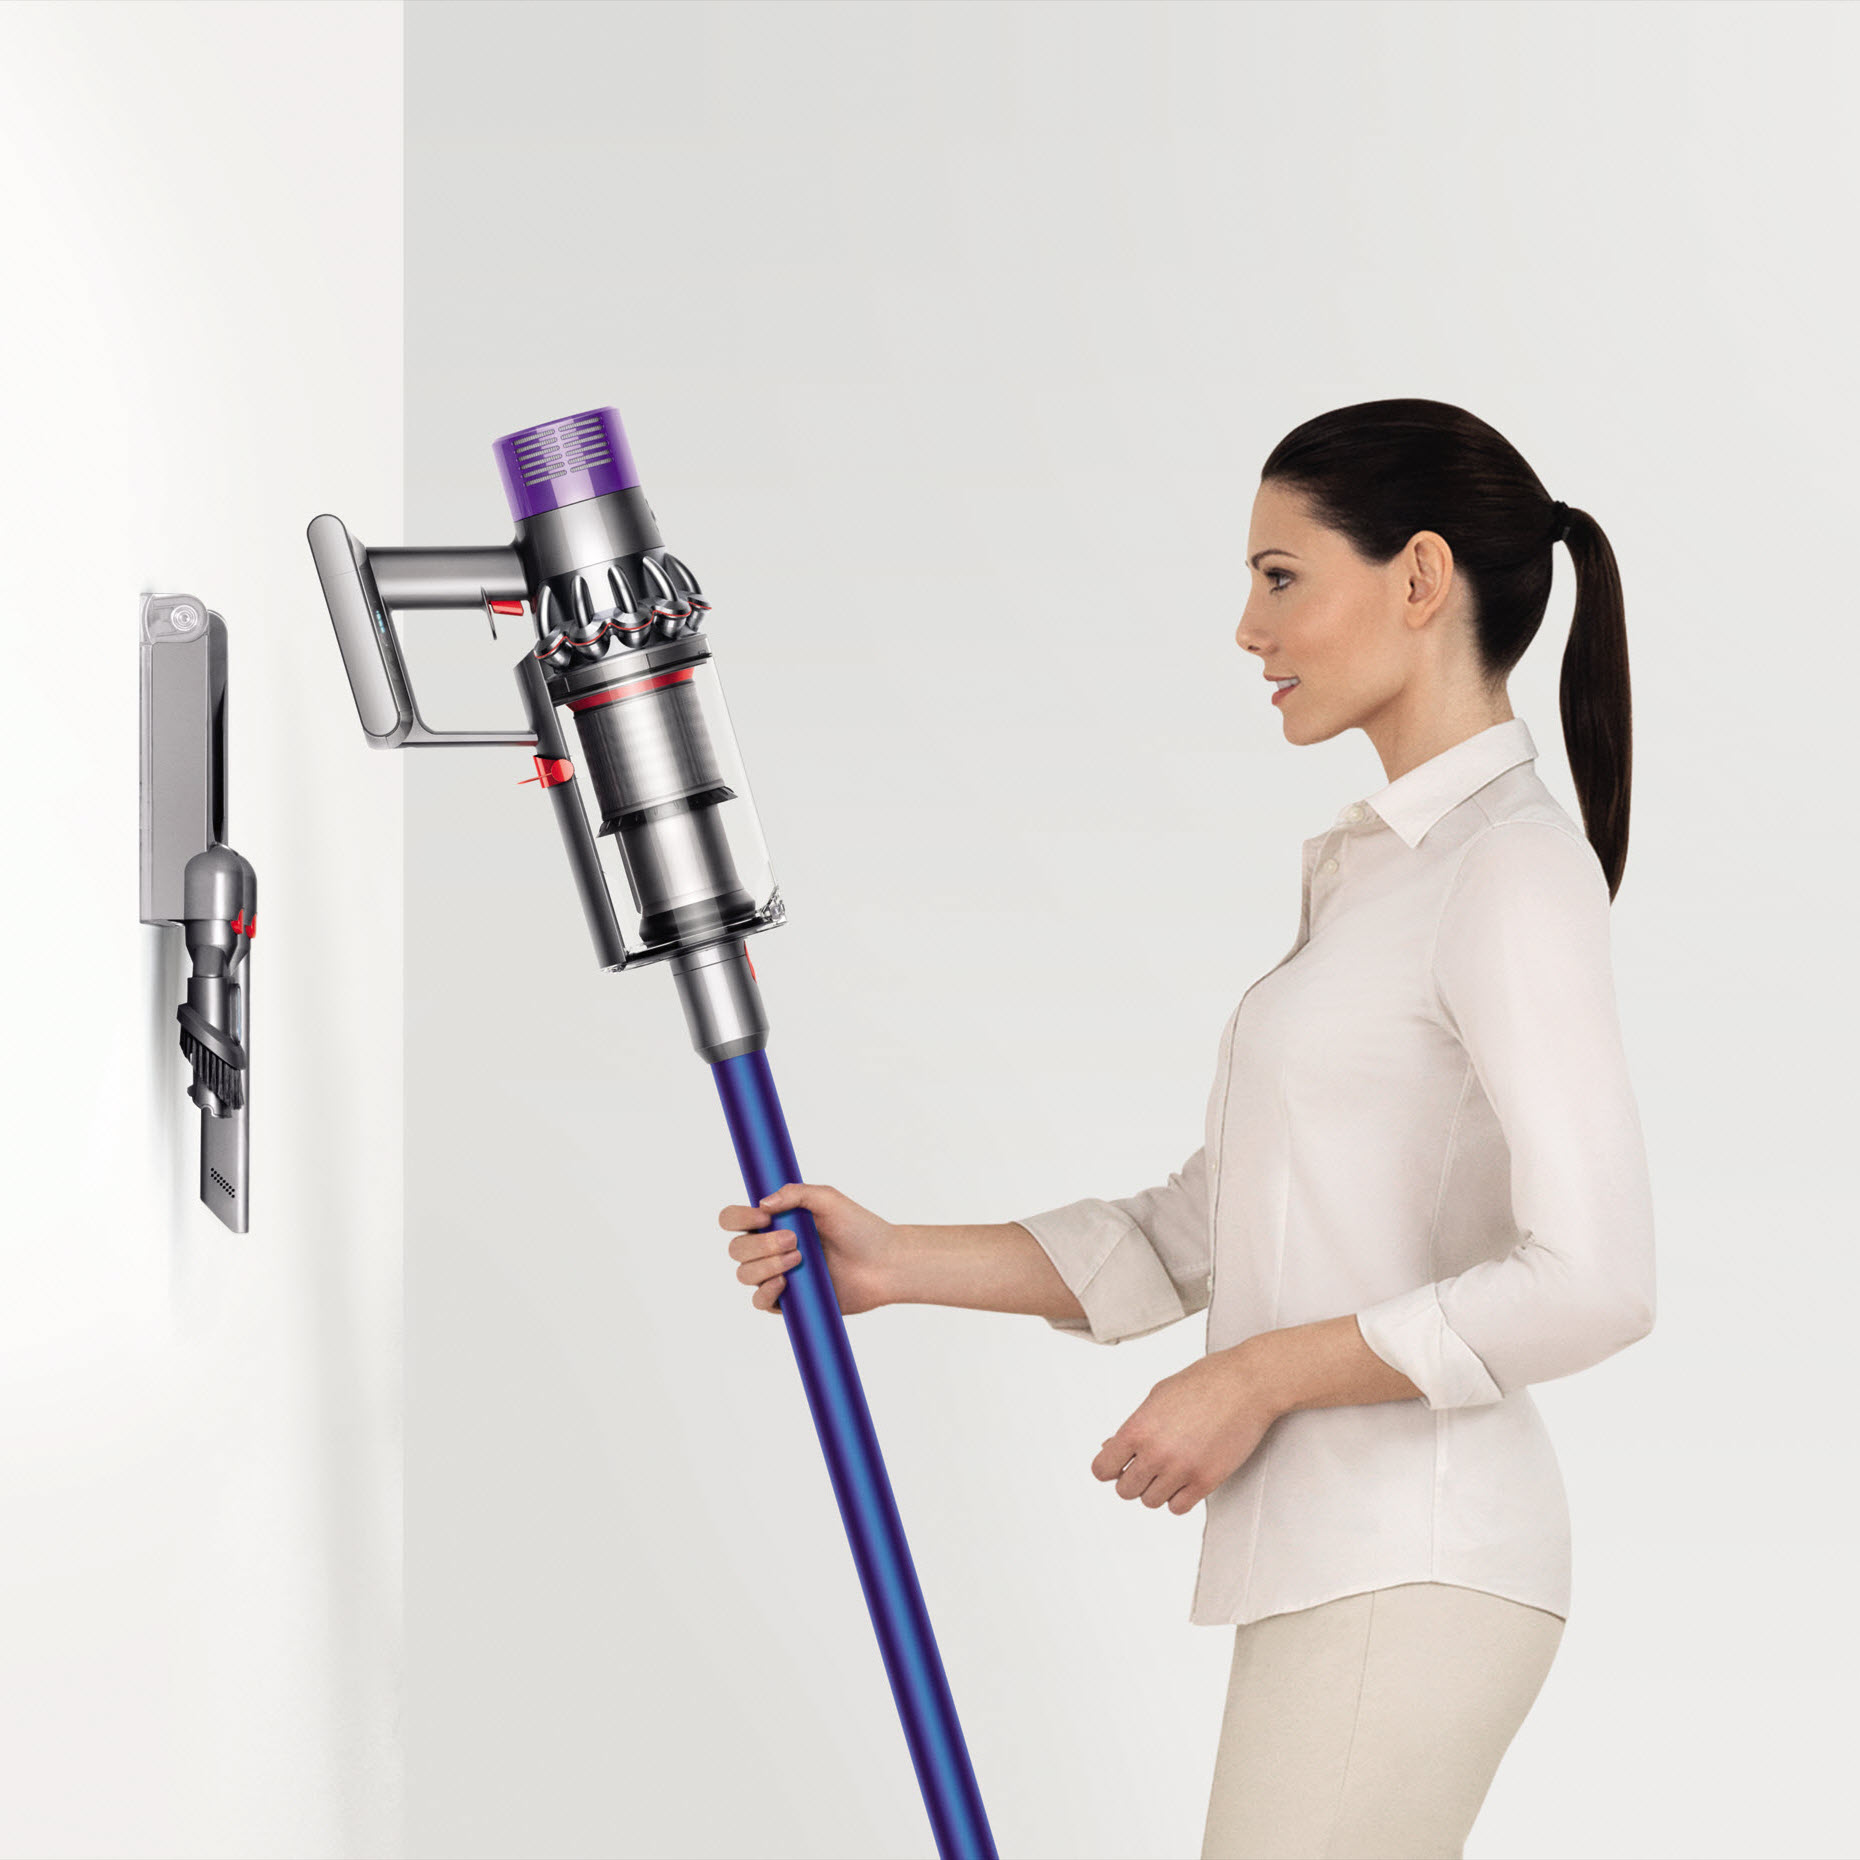 Dyson-V10-Absolute-Cordless-Vacuum-Cleaner-Refurbished thumbnail 15